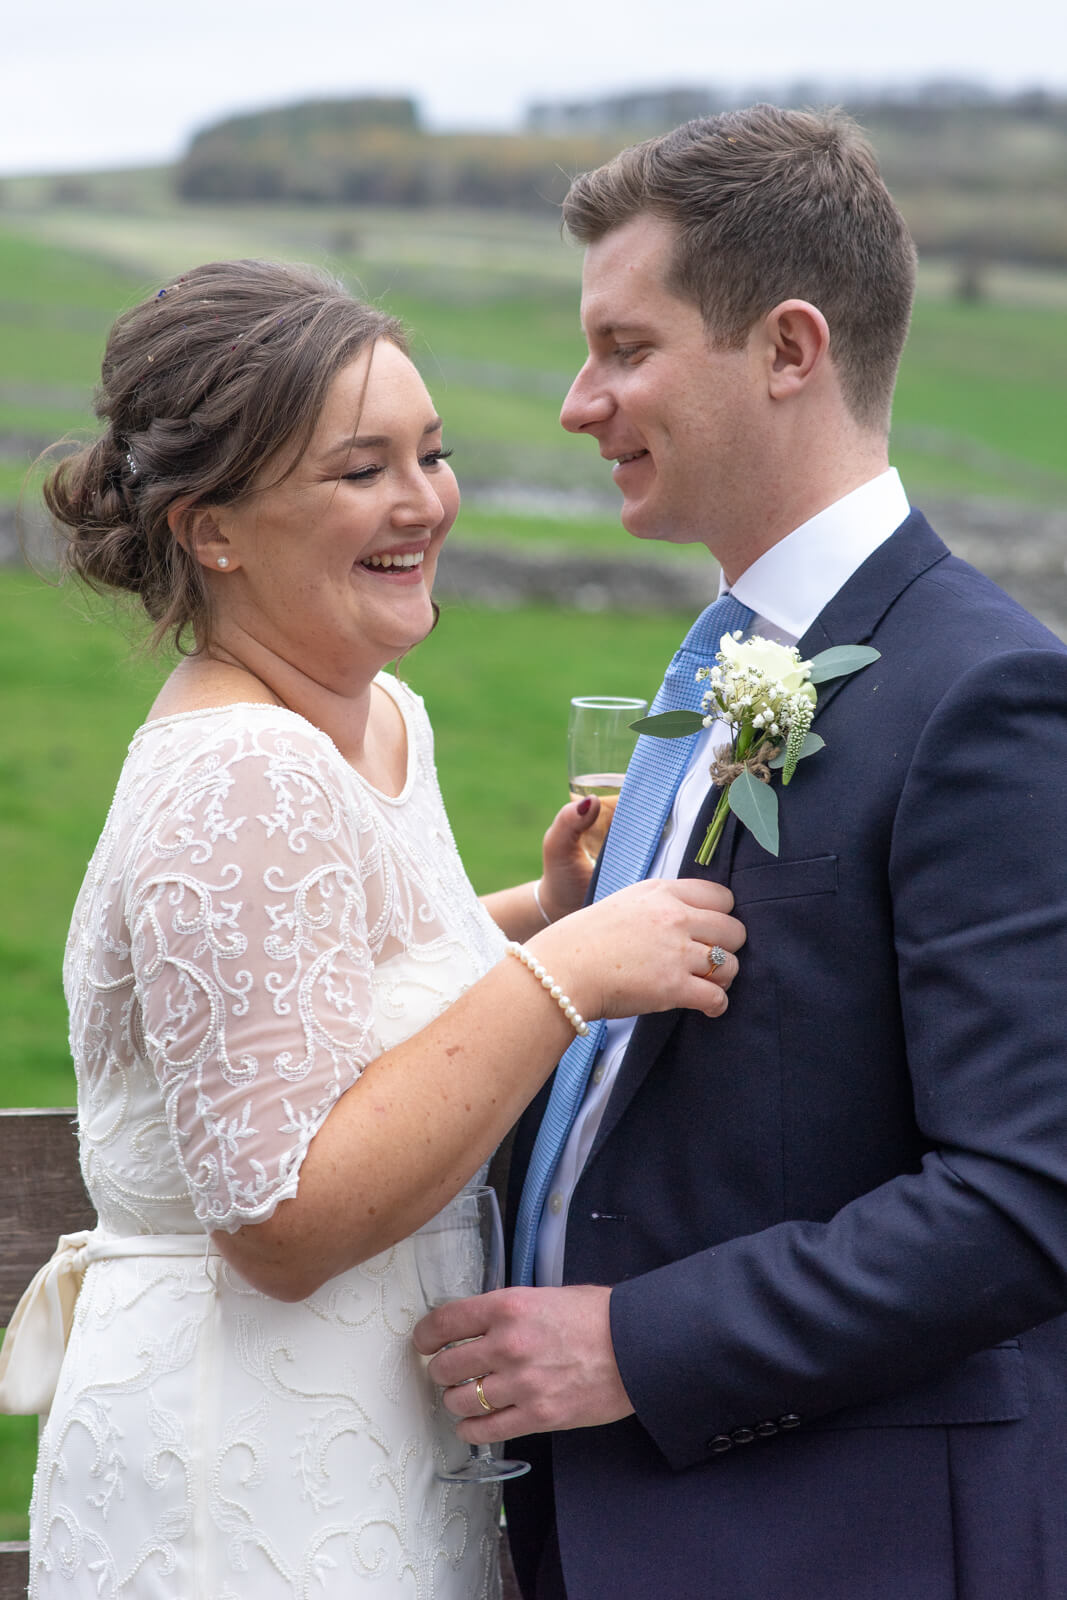 Bride and groom laugh together in the derbyshire countryside